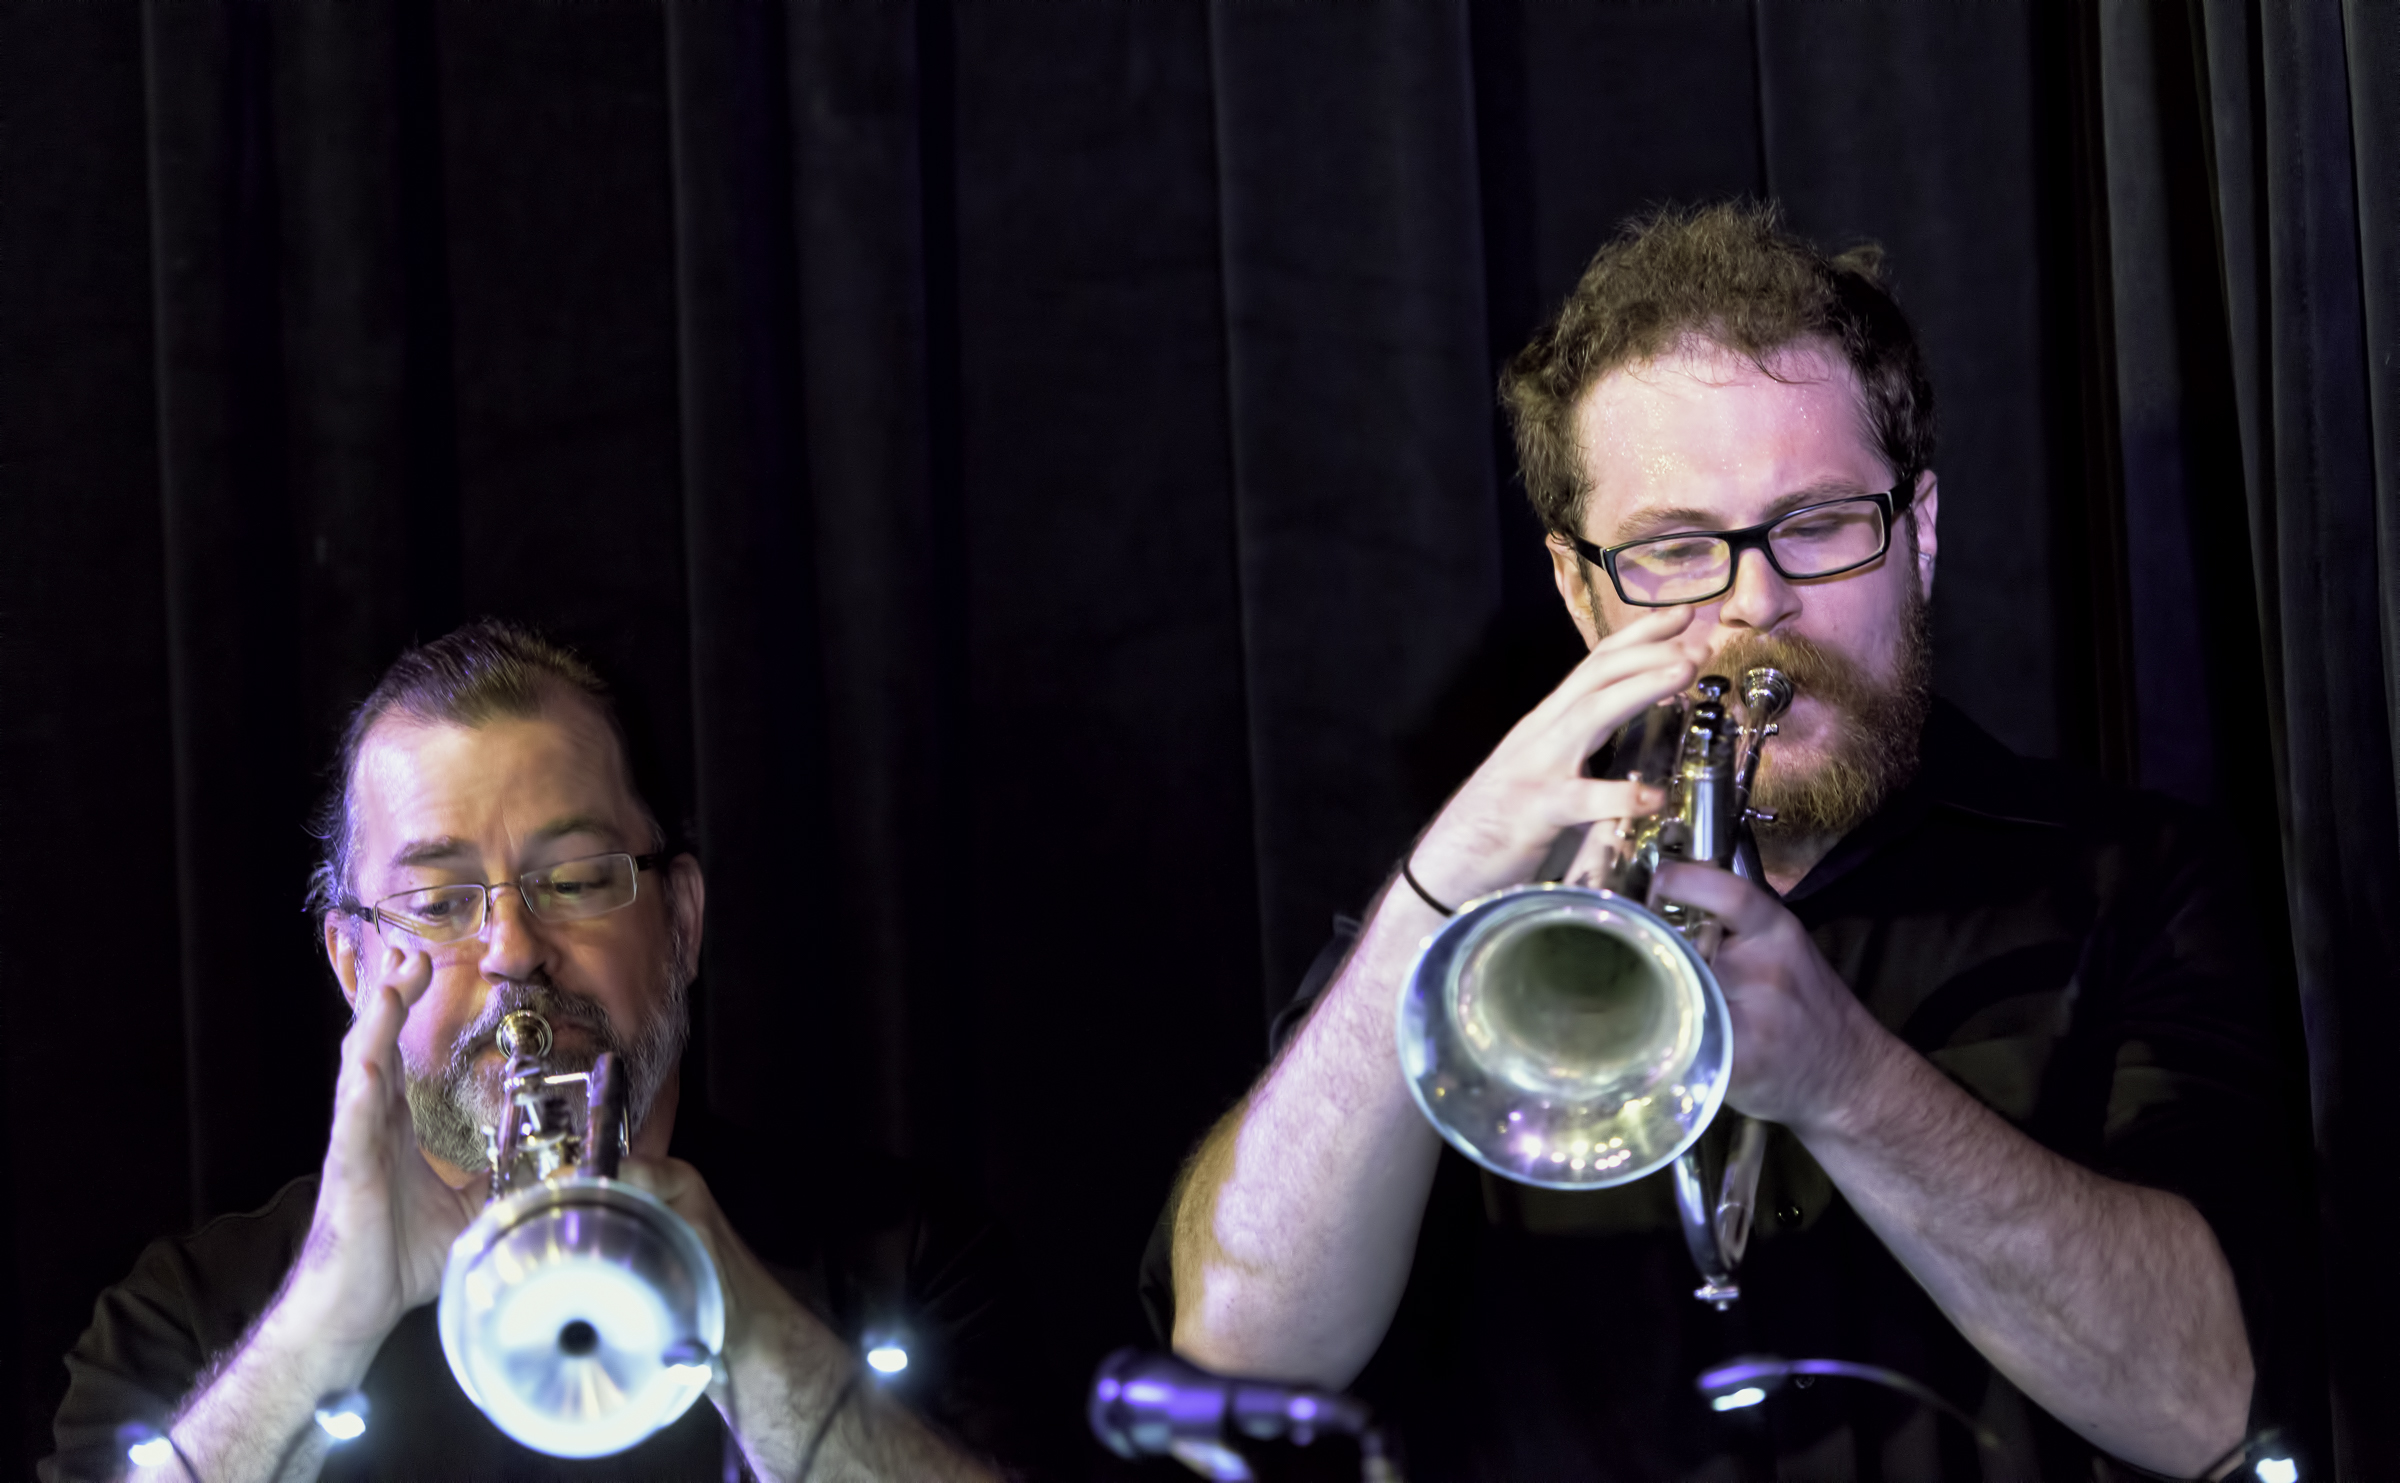 Chris Dolske And Jayson Owen Davis With The Scottsdale Community College Jazz Orchestra At The Nash In Phoenix